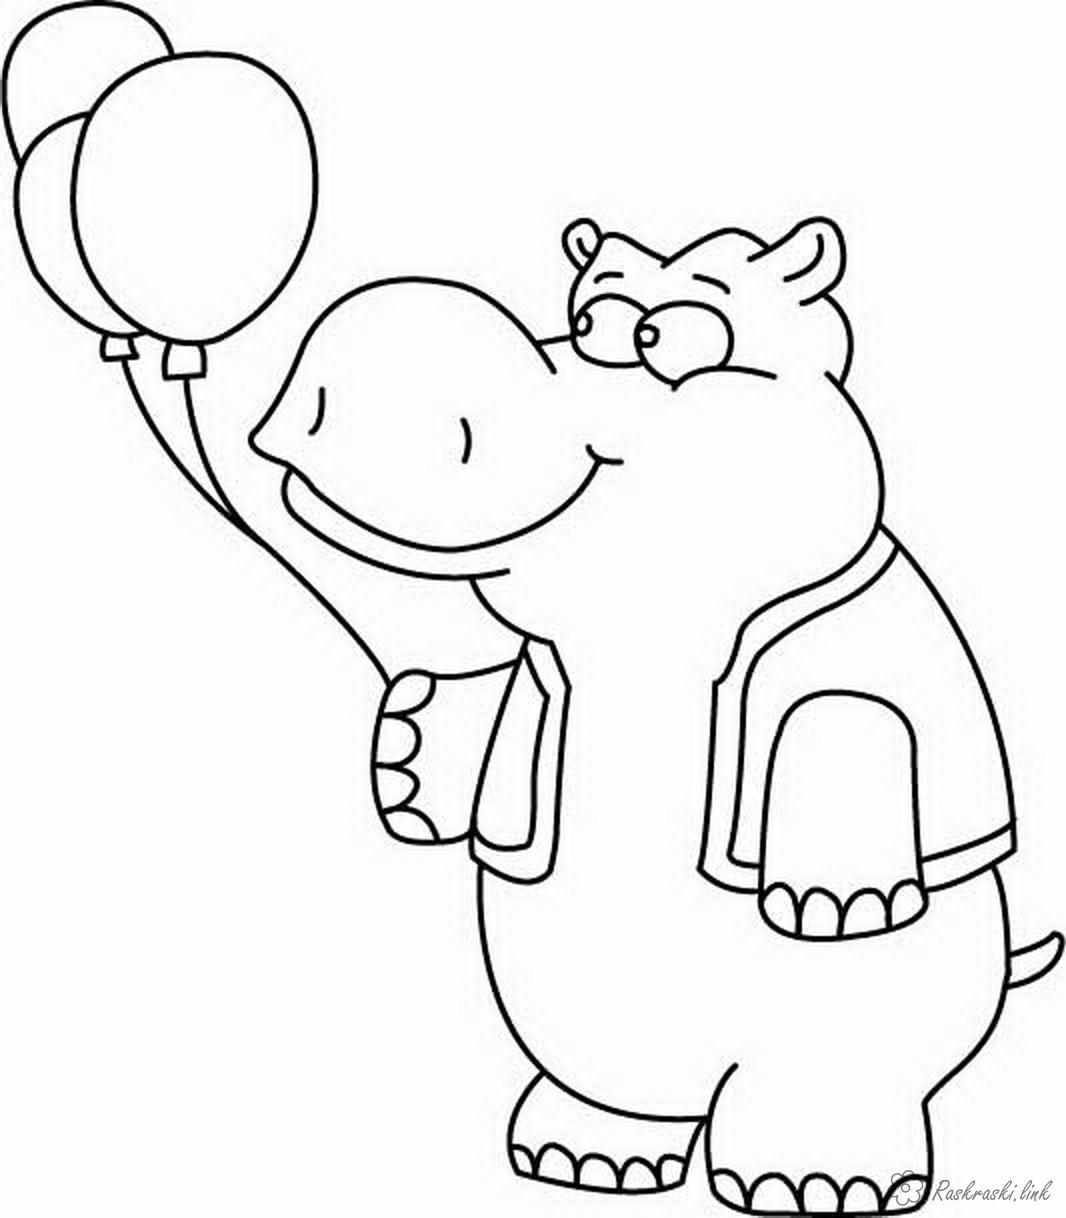 Coloring Simple coloring pages for kids Hippo with a ball coloring pages